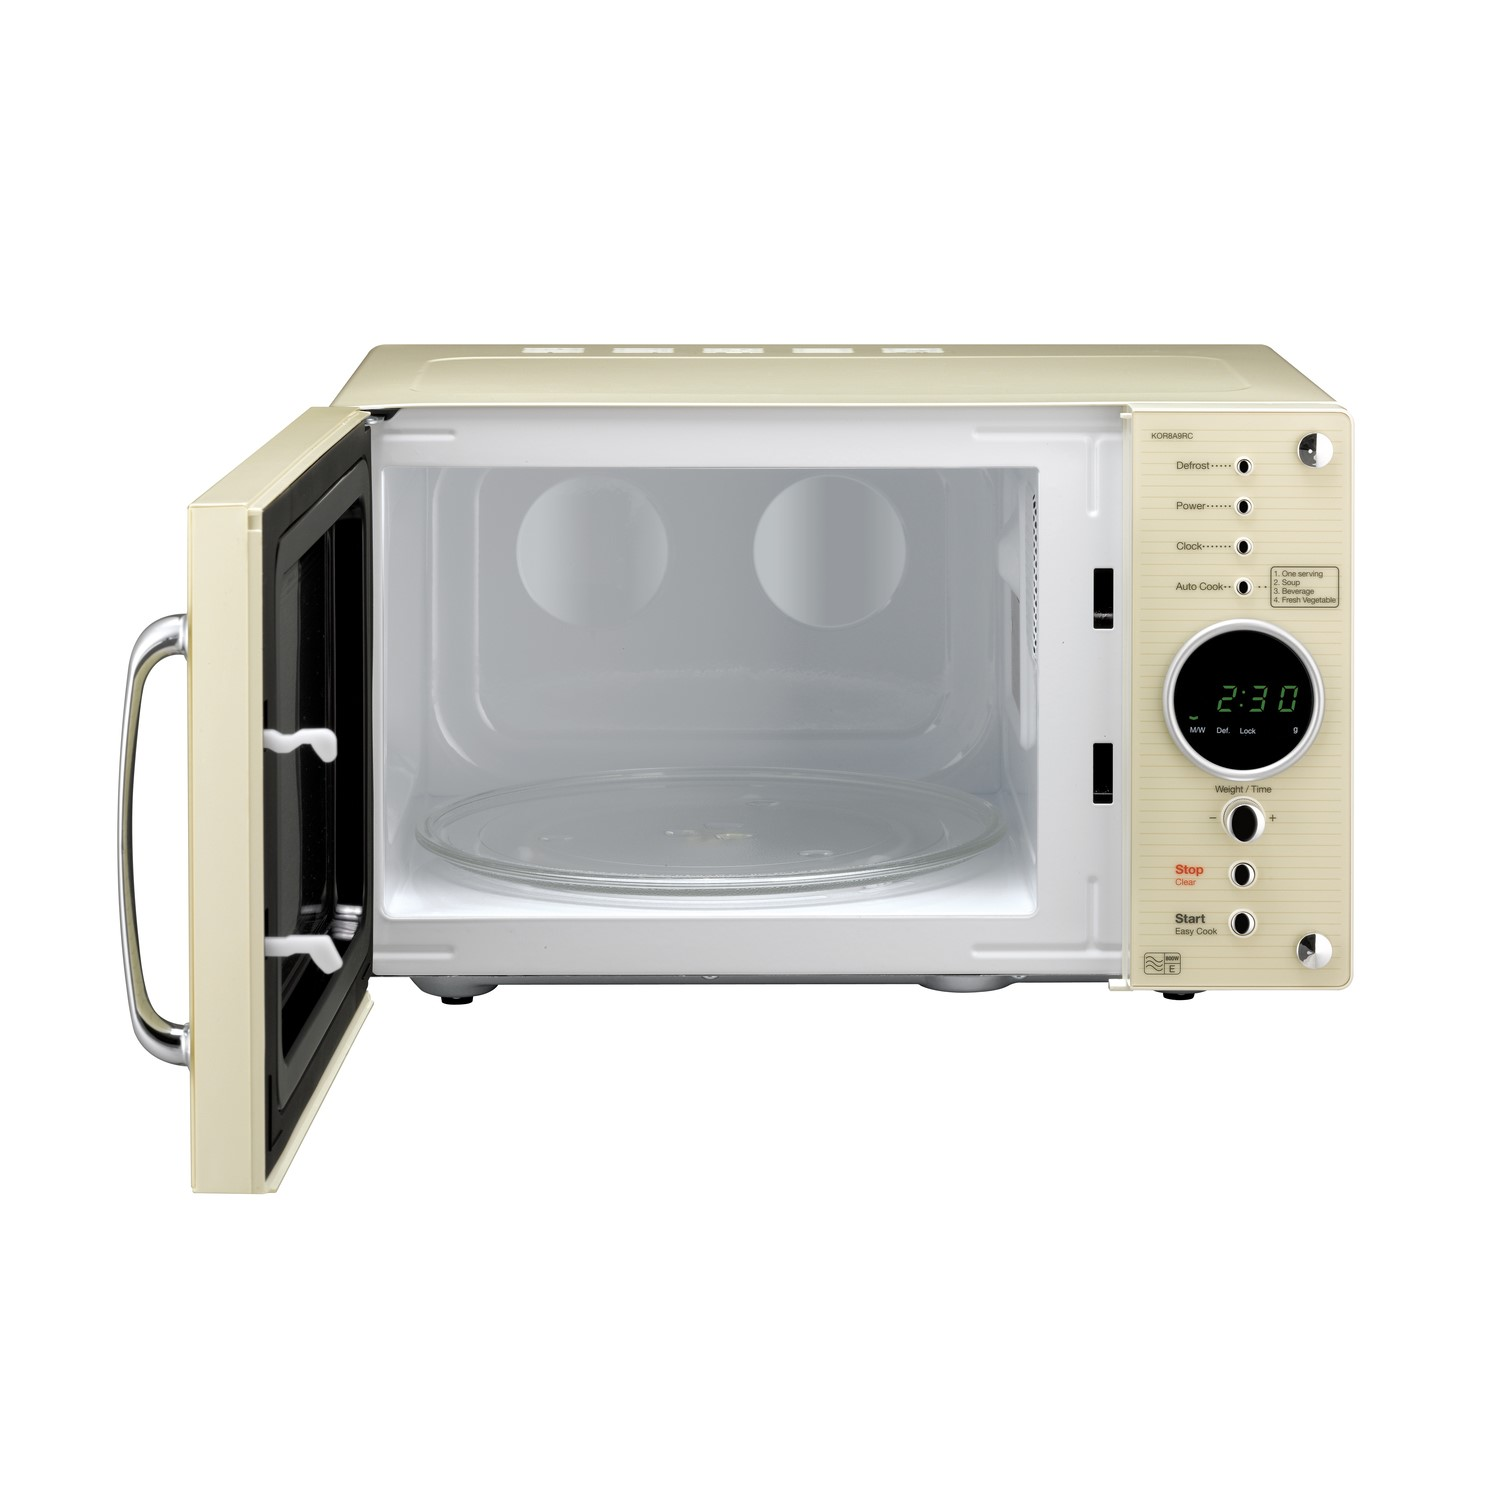 Daewoo Microwave Oven Parts: Daewoo KOR8A9RCR 23L 800W Retro Style Freestanding